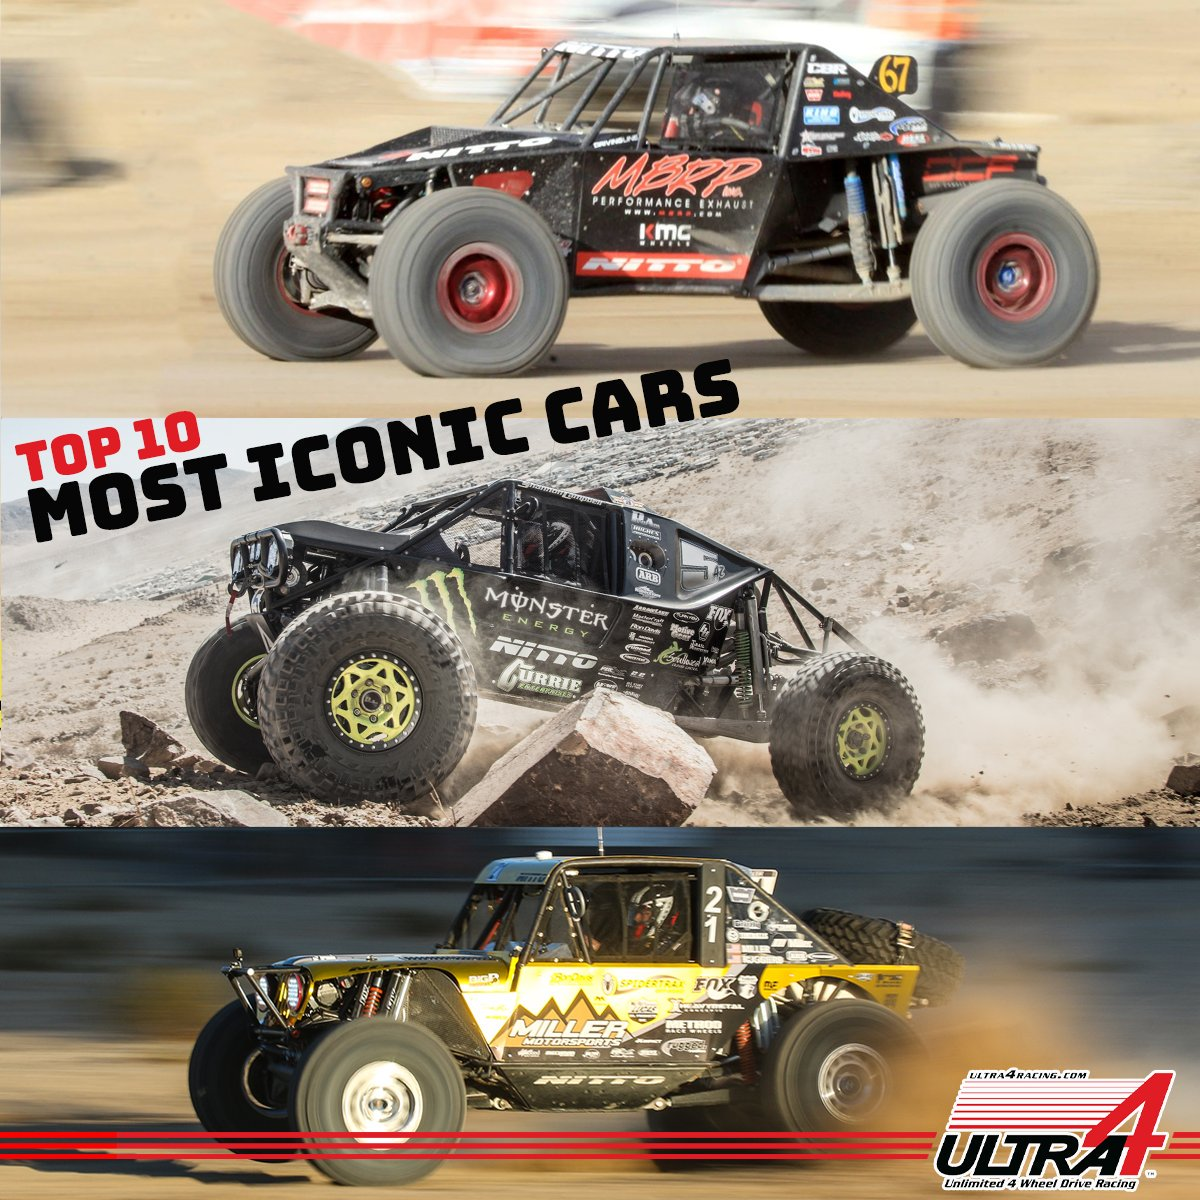 Do you have a favorite rig in Ultra4? Nominate it for it to be featured in the Top 10 Most Iconic Cars feature set to drop leading up to #KOH2020! m.facebook.com/story.php?stor… #Ultra4 #KingoftheHammers #MostIconicCar